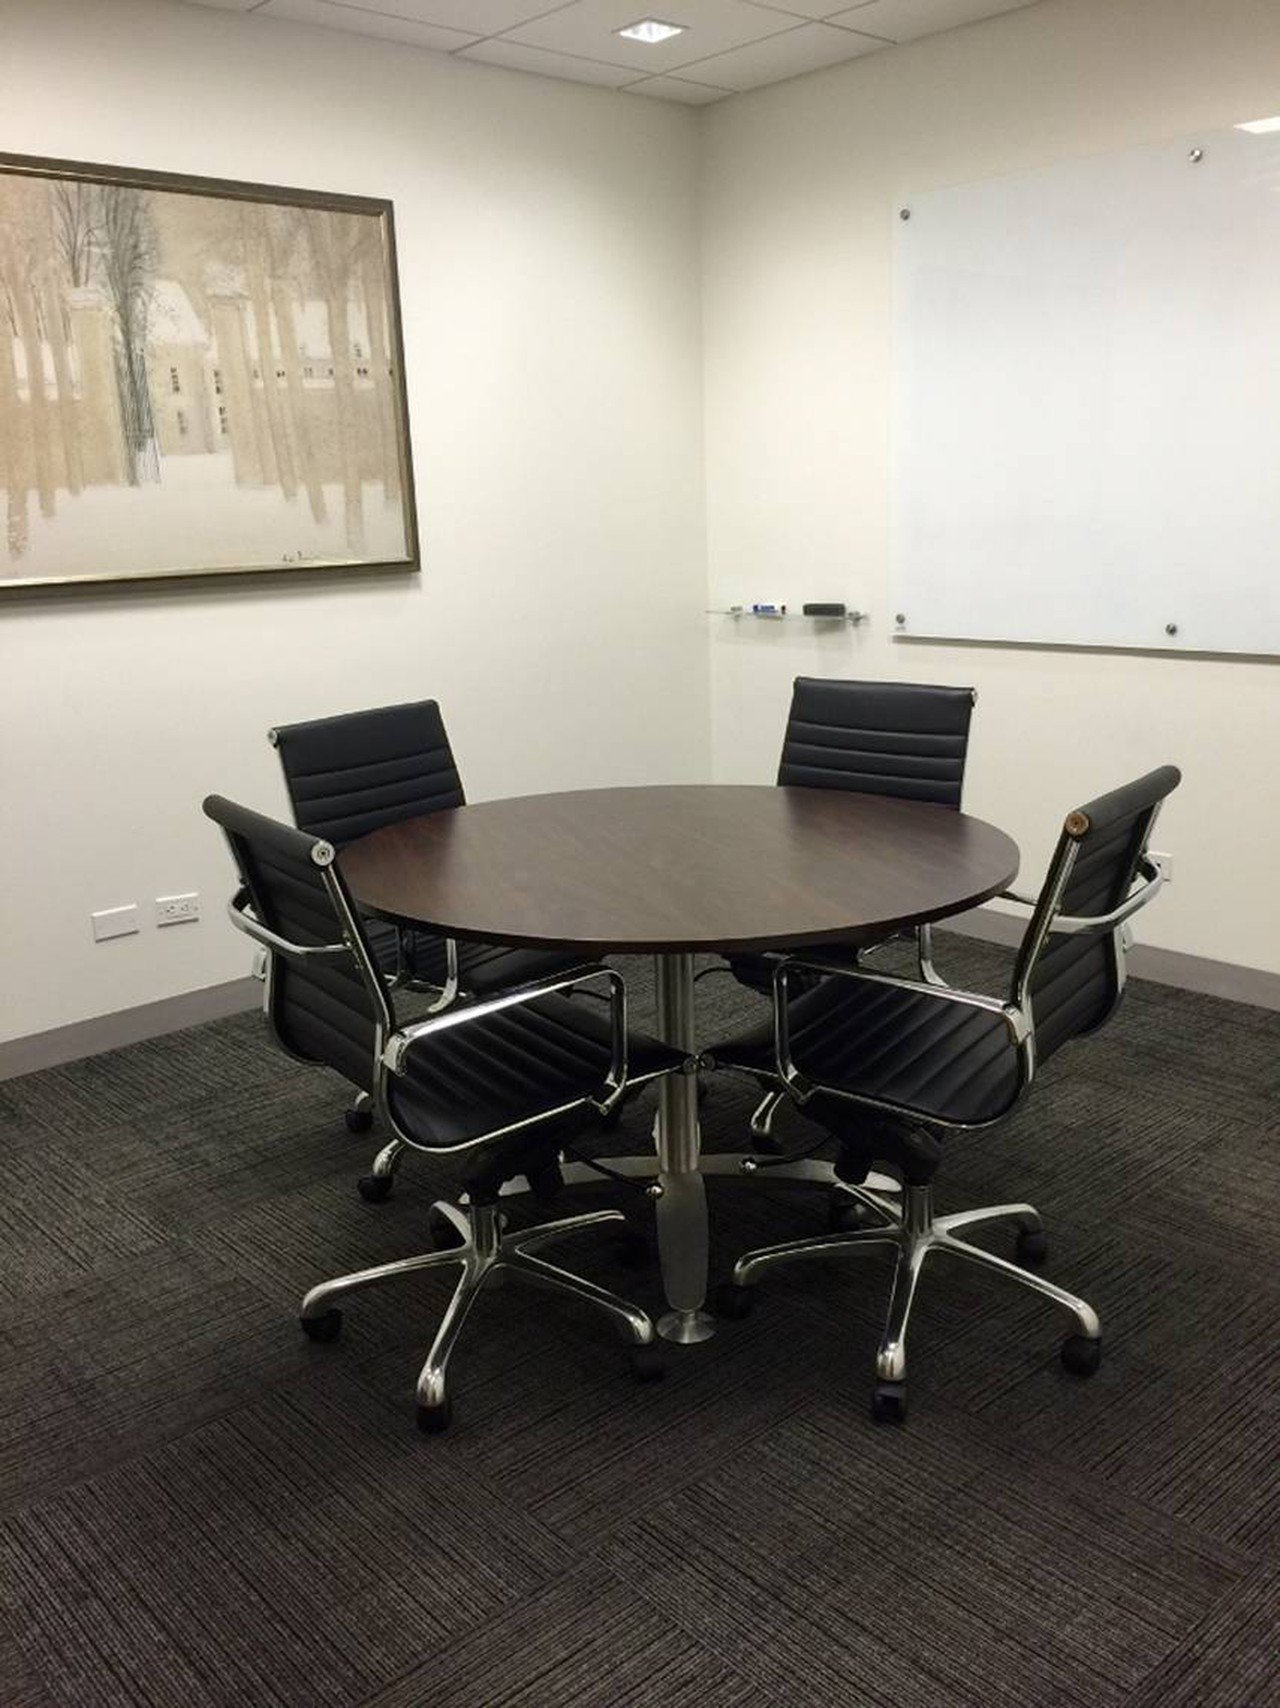 NYC conference rooms Meetingraum Conference Room 8B image 0